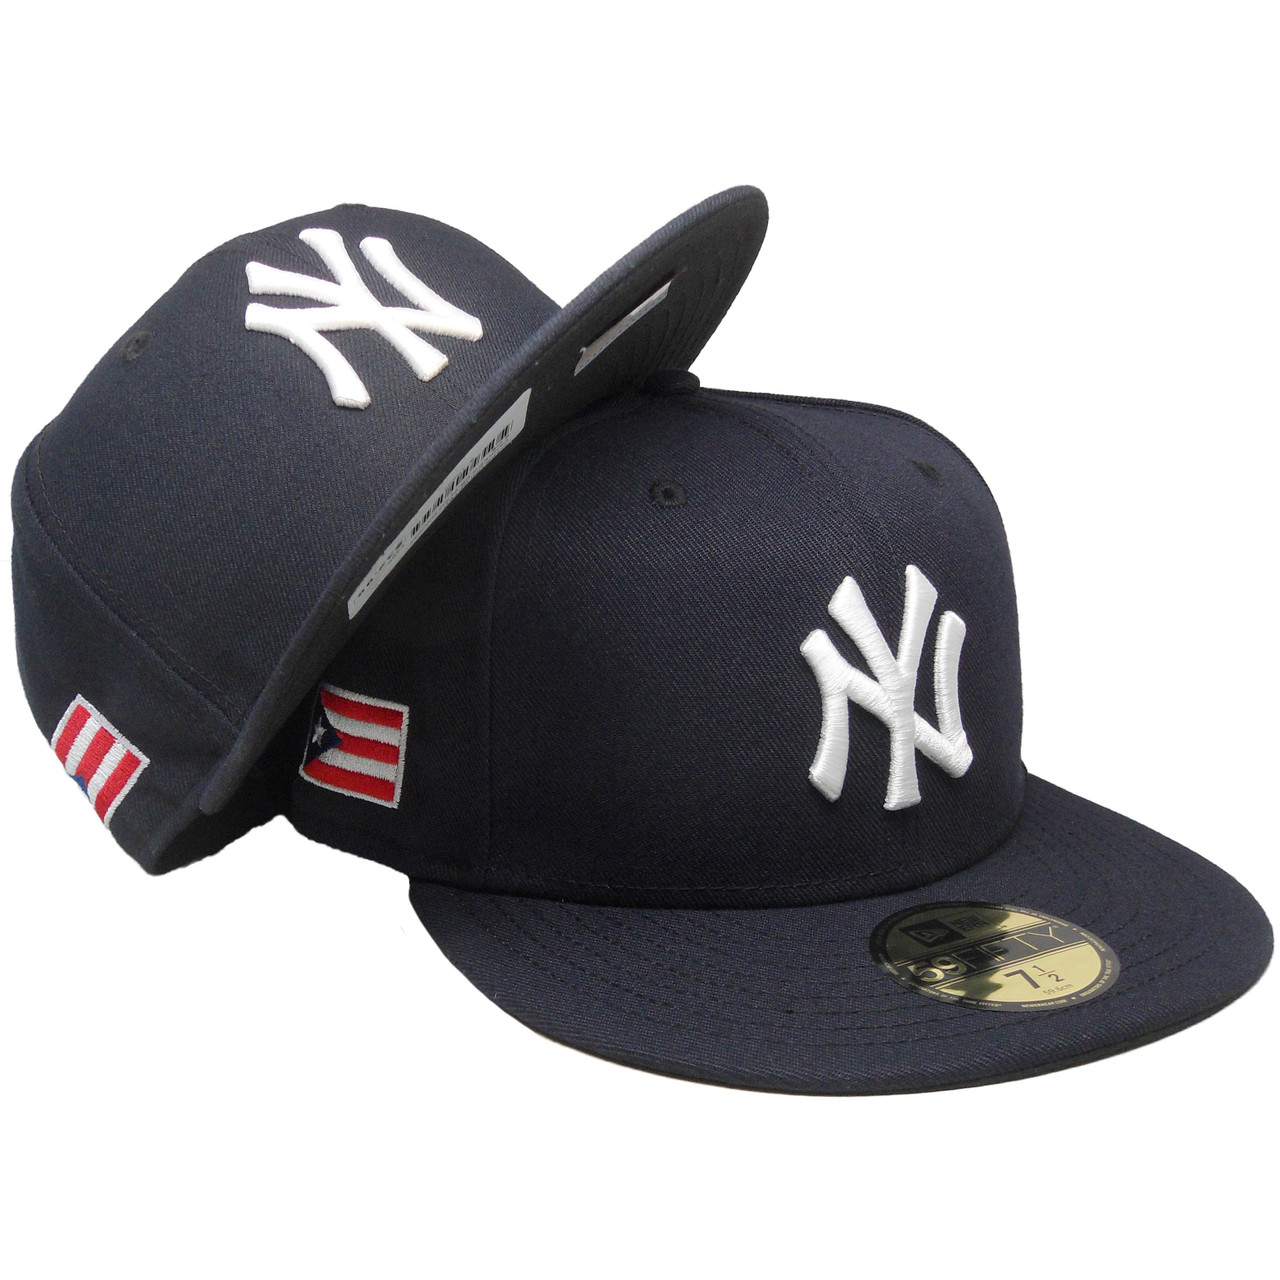 super popular d6fbb 8243b New York Yankees New Era 59Fifty Custom PR Flag Fitted Hat - Navy, White -  ECapsUnlimited.com